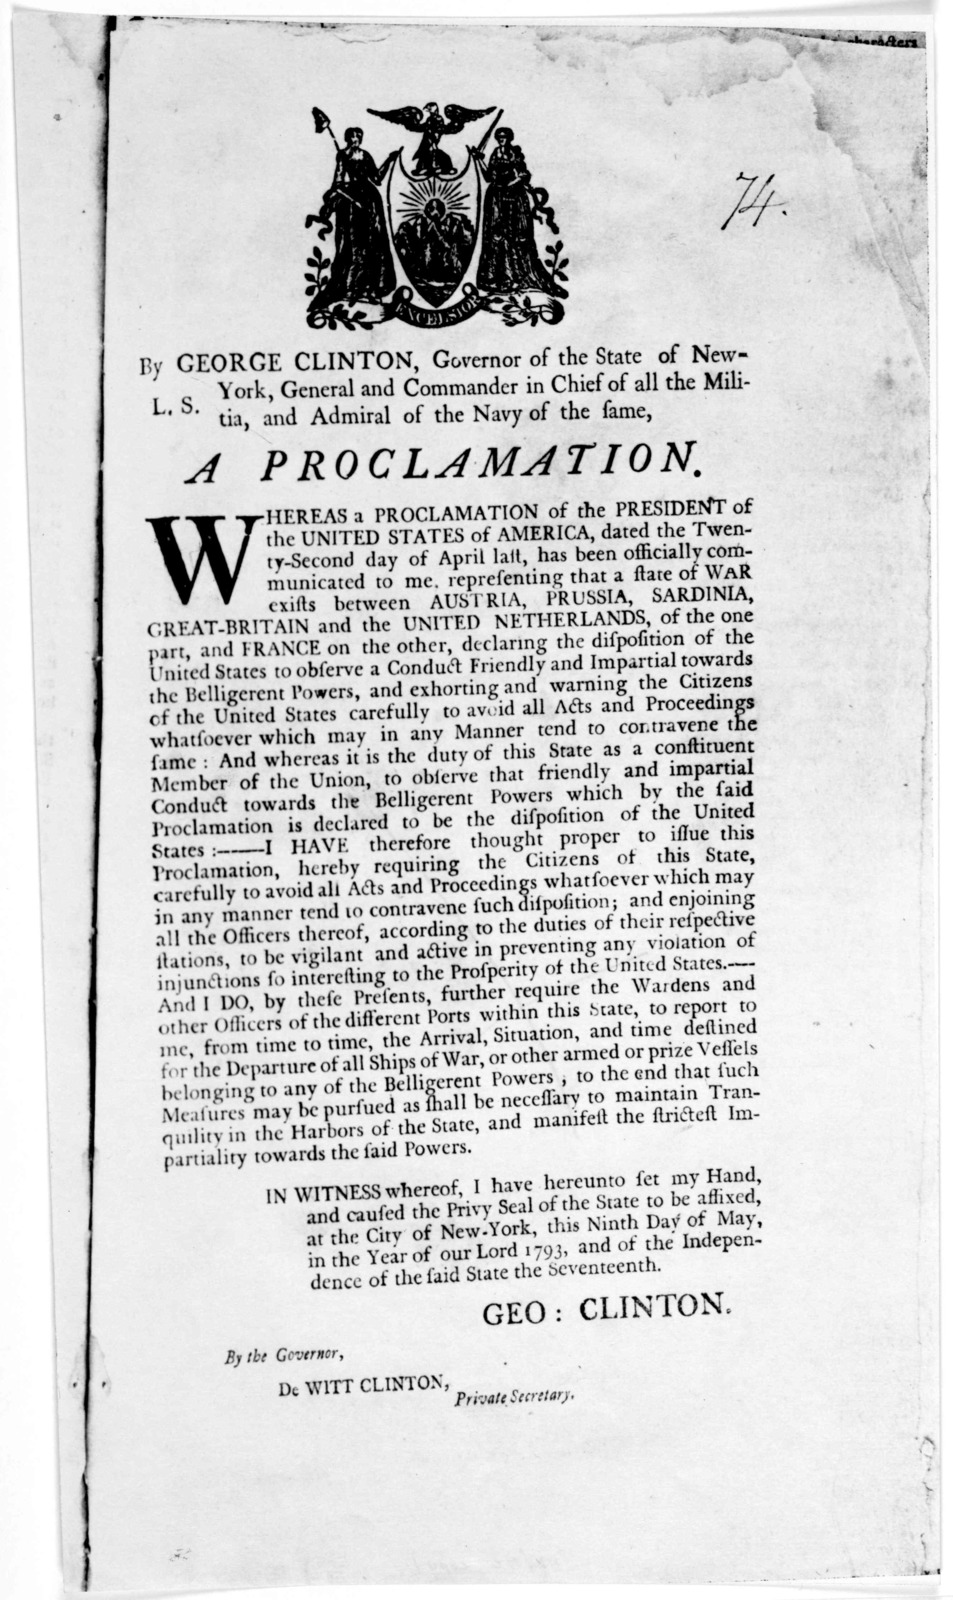 By George Clinton. Governor of the State of New York. General, and commander in chief of all the militia, and admiral of the Navy of the same. A proclamation. Whereas a proclamation of the President of the United States of America, dated the twe